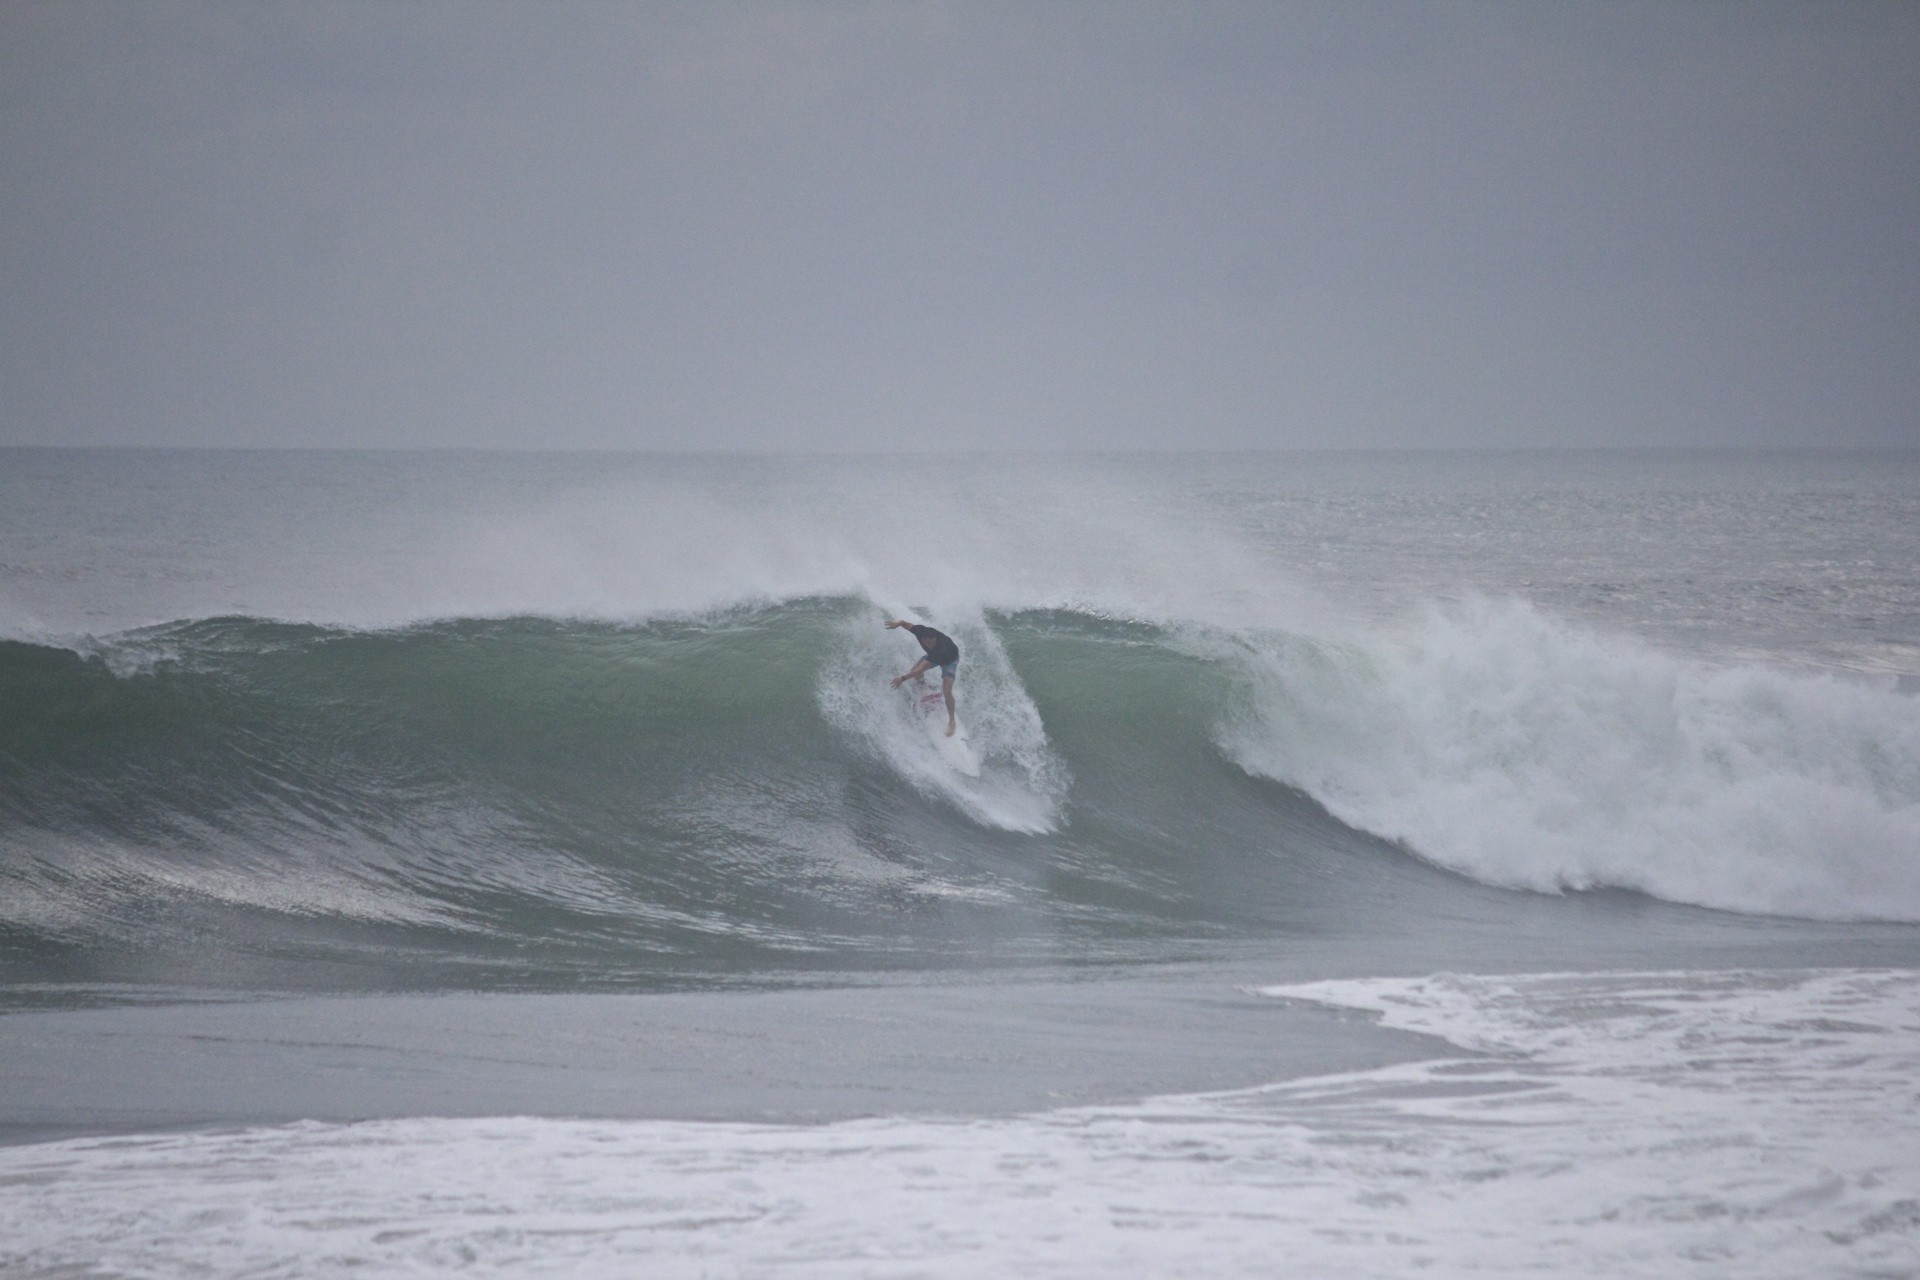 scott's photo of Canggu